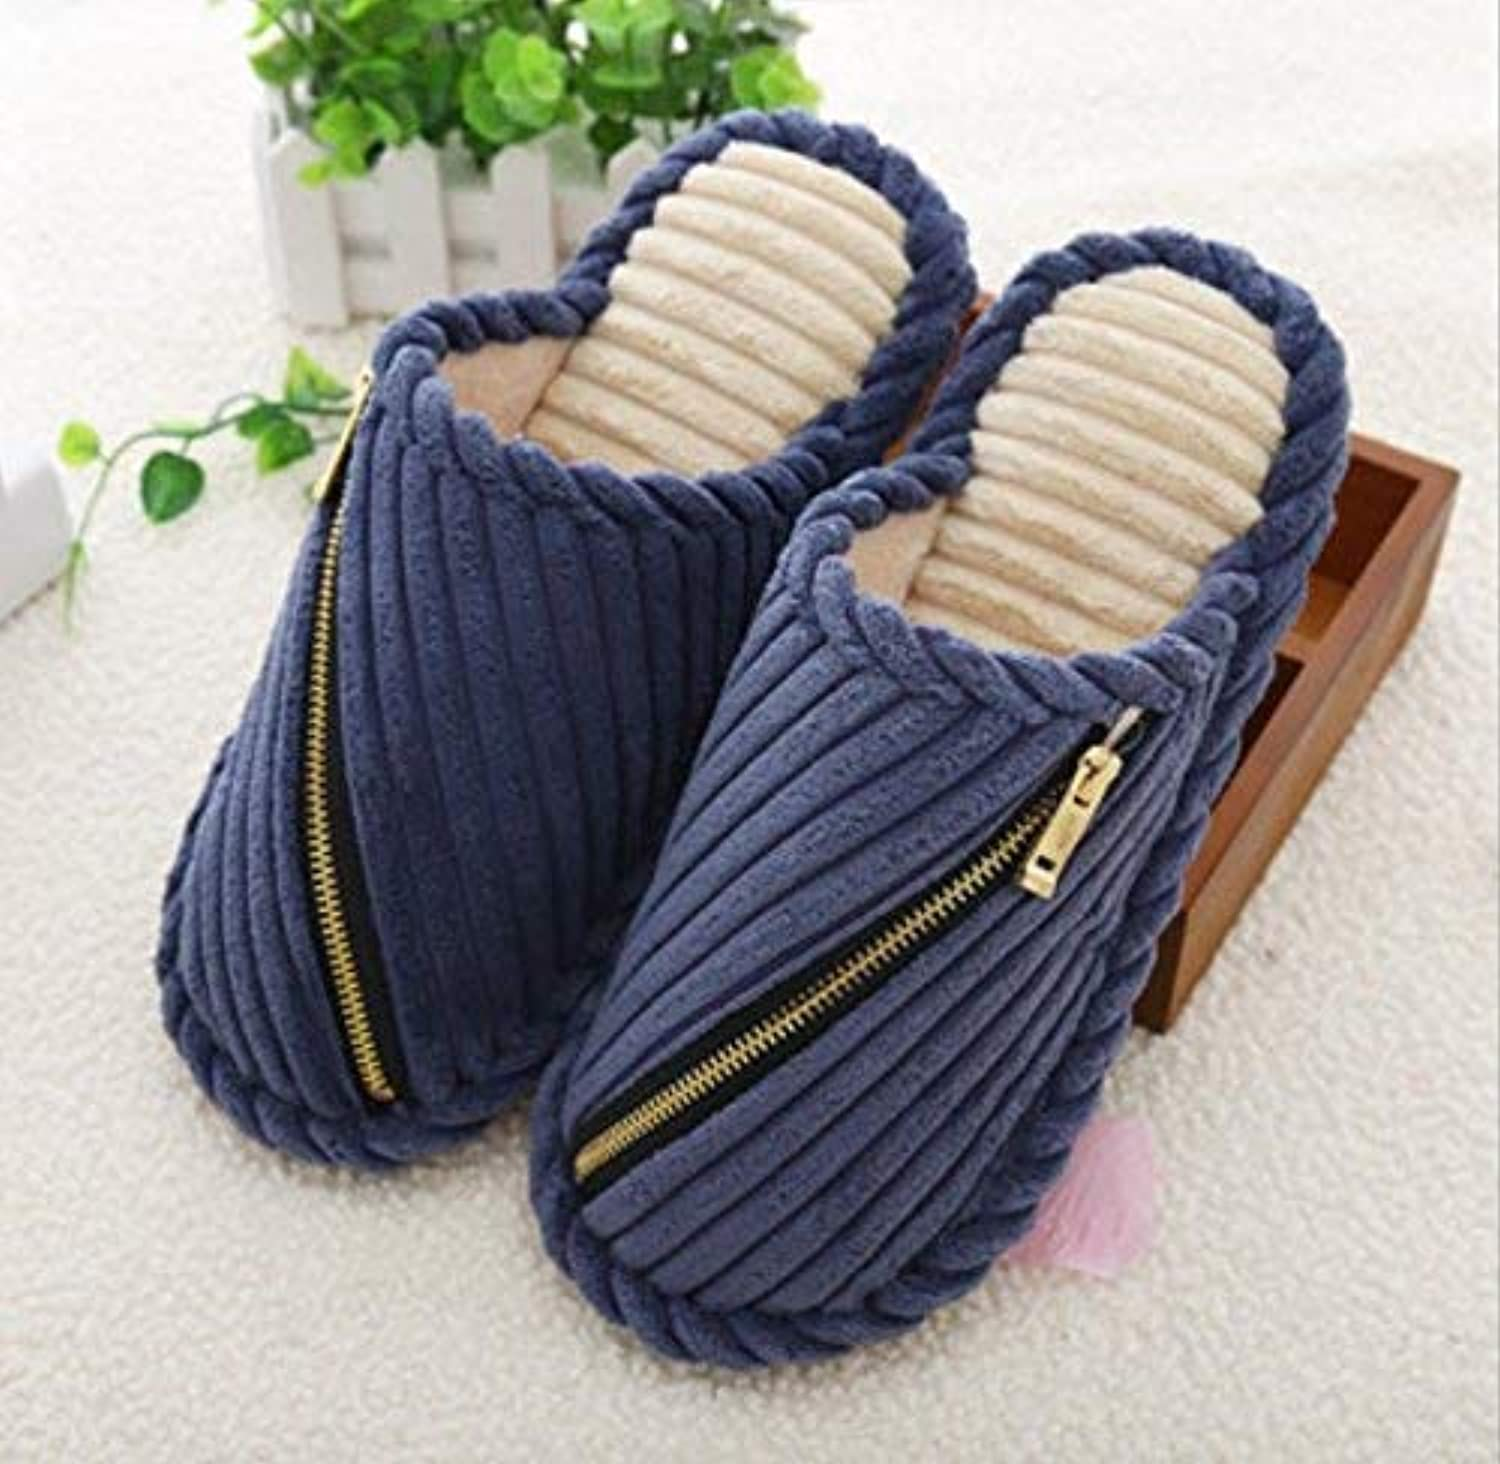 Men 's Home Cotton Slippers Indoor Slippery and Keep Warm Casual Slippers Medium for Men Solid color Purple